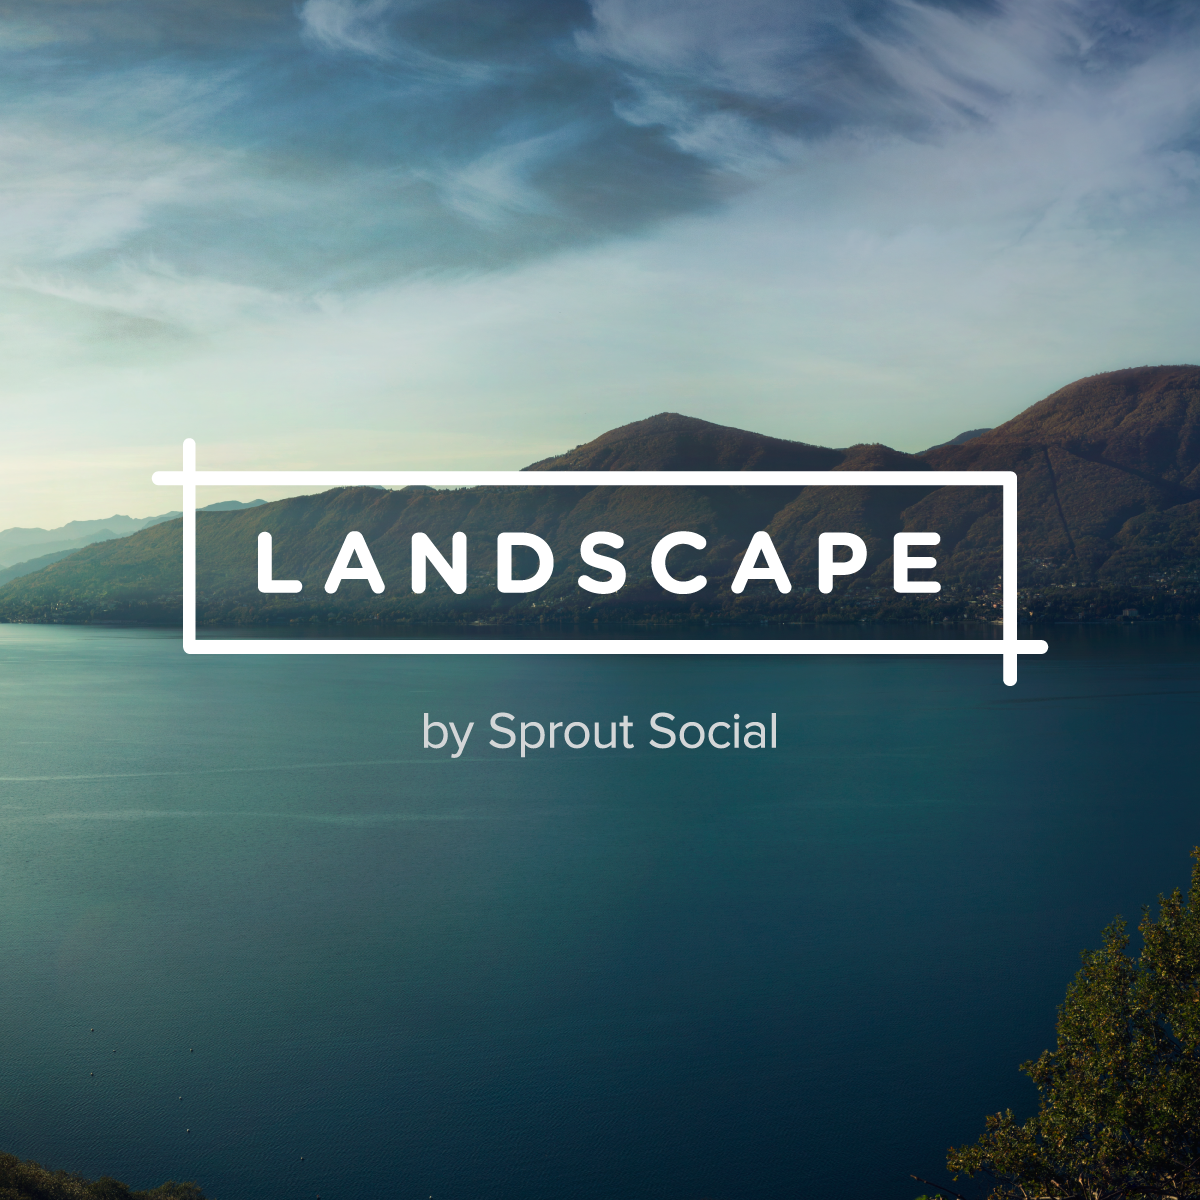 Redimensionar imagens Landscape by Sprout Social